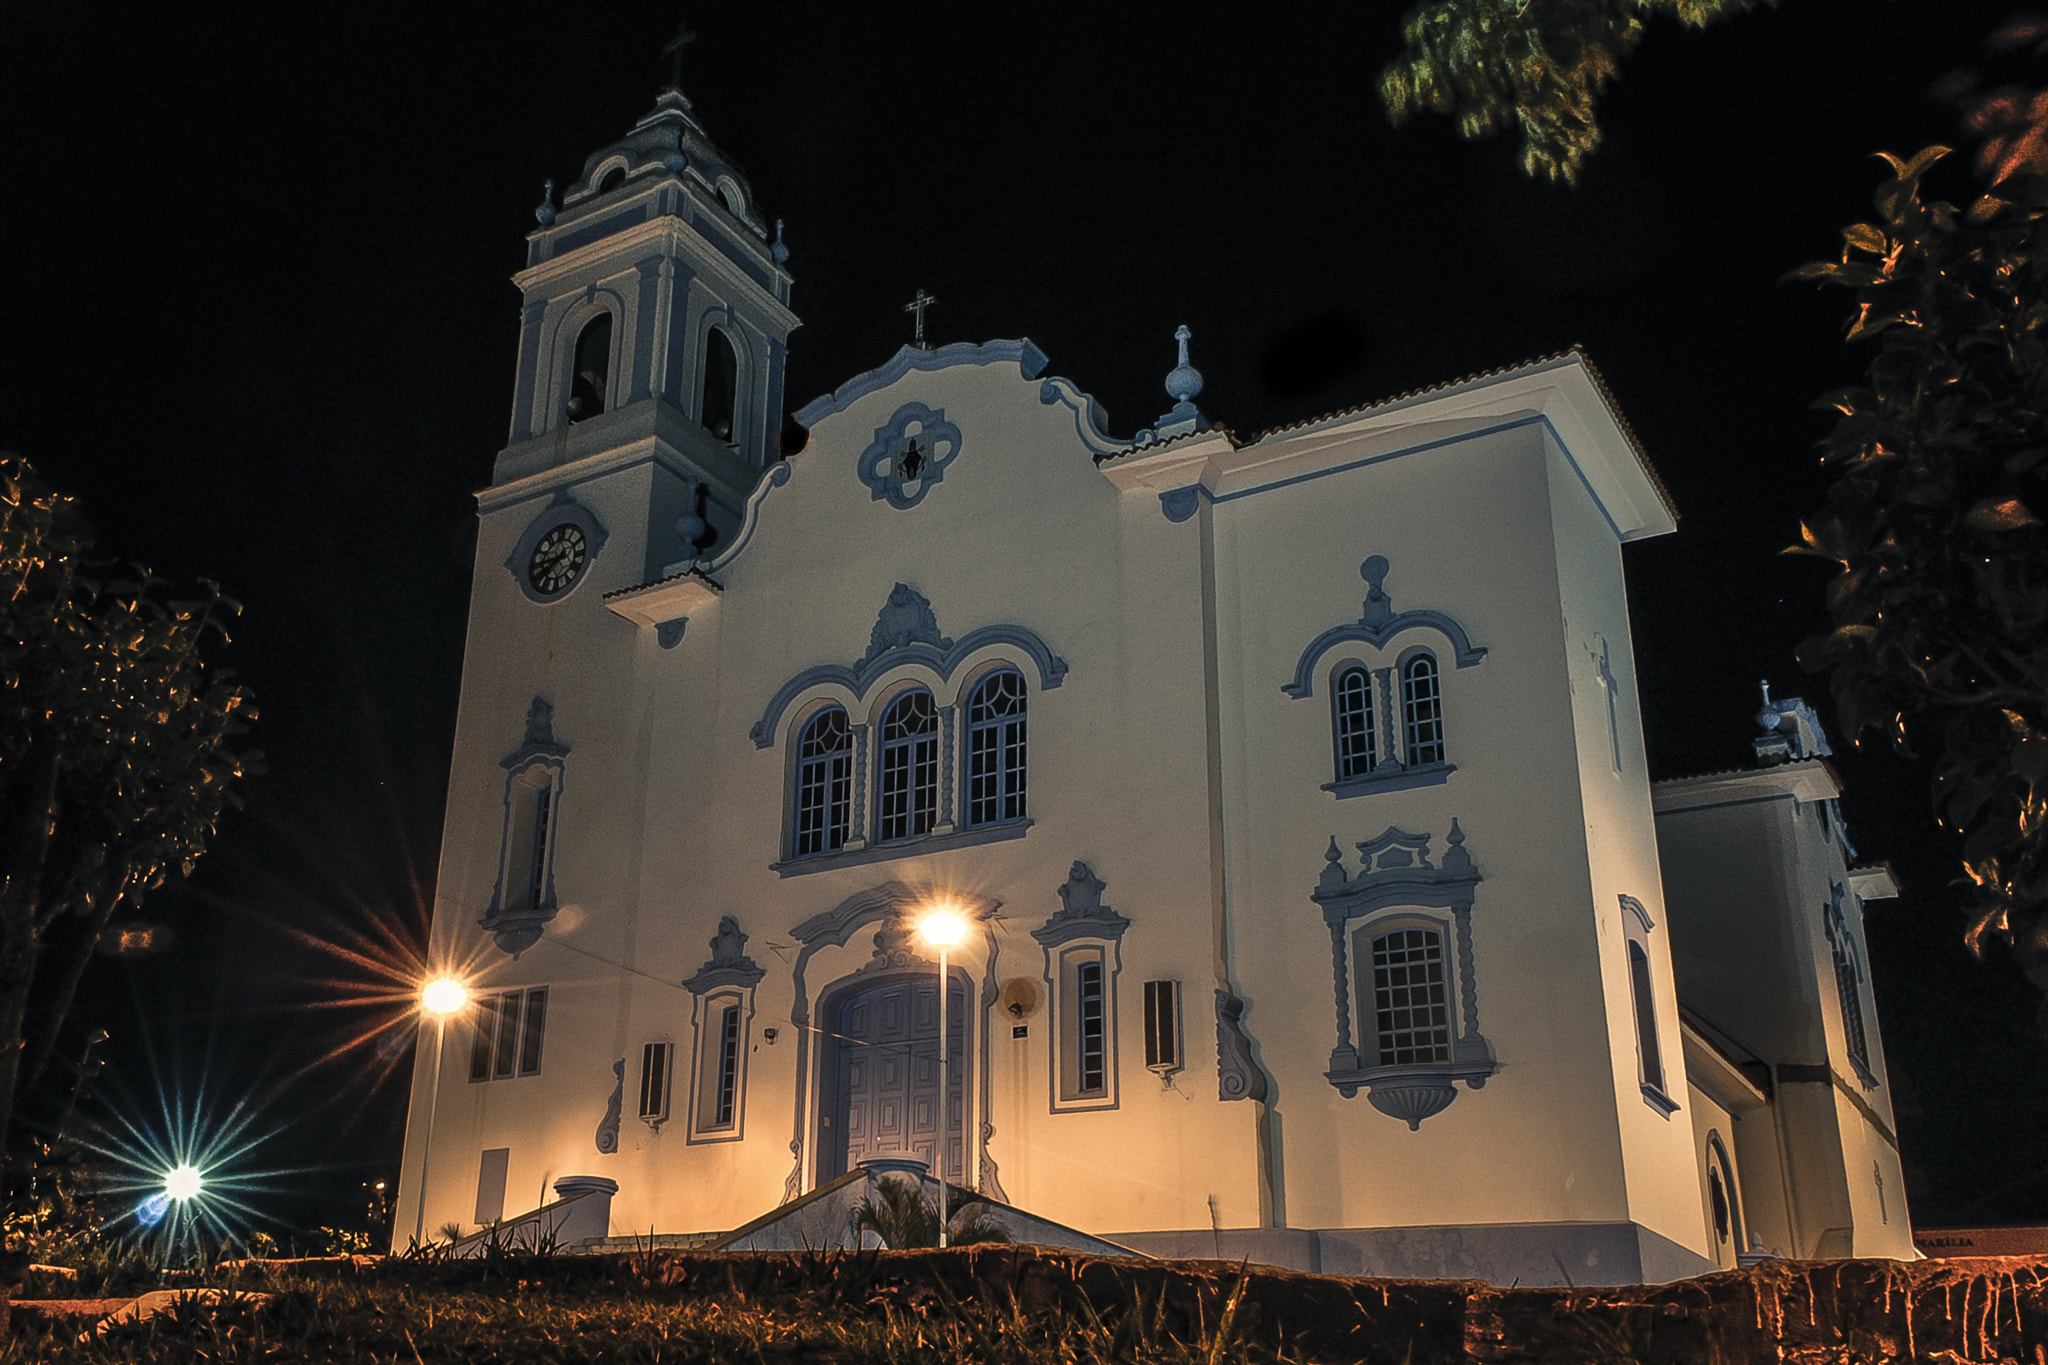 Photograph Mariland Church by Matheus Dalmazzo on 500px